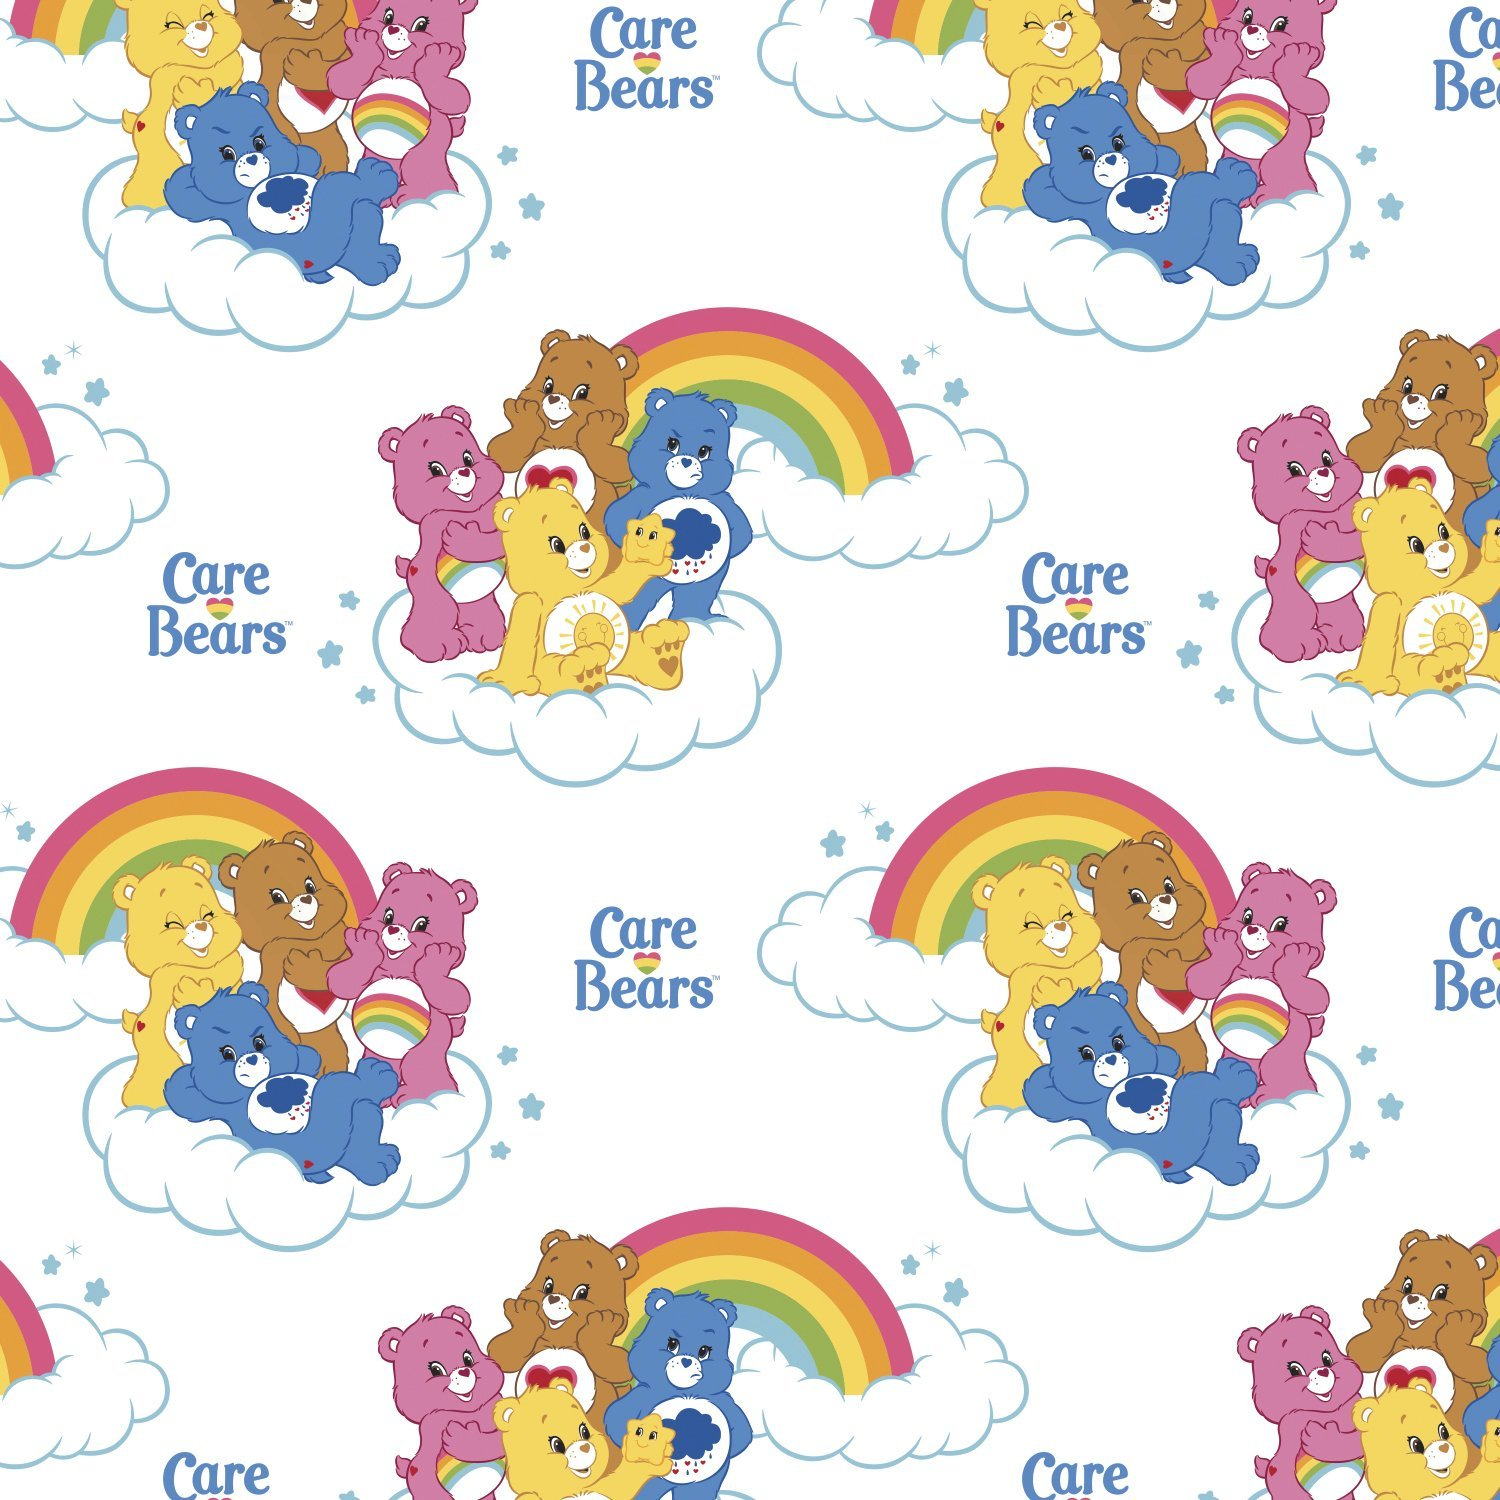 Care Bears 44010101-1 Rainbows on White